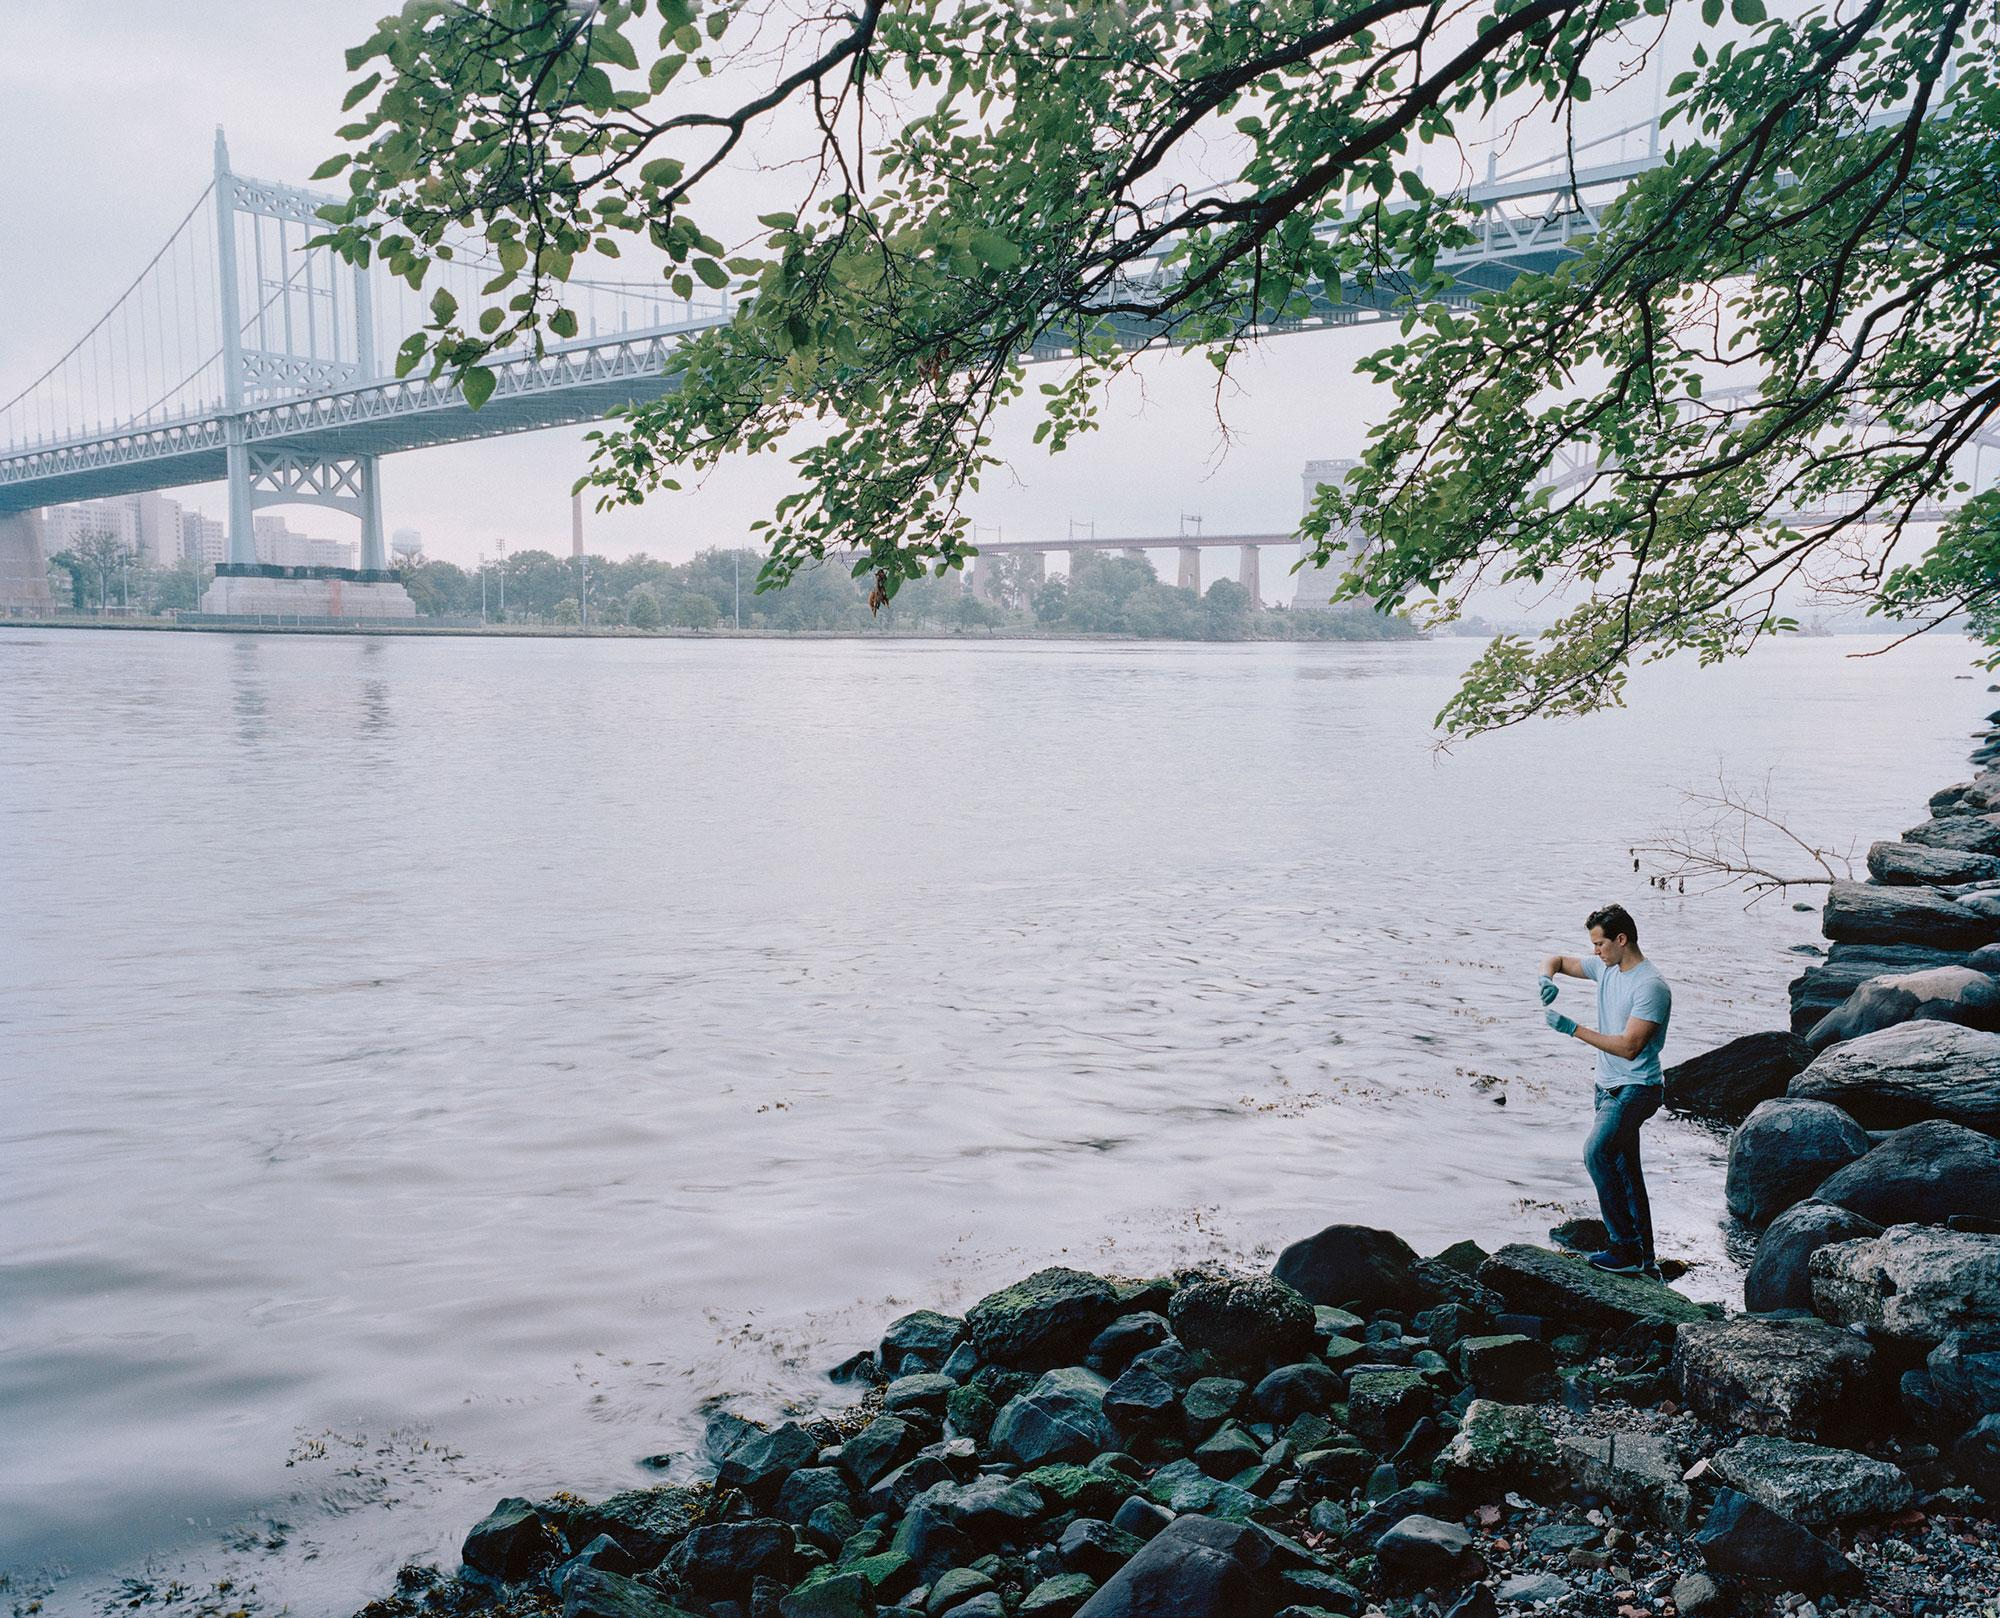 "<p>Citizen Science Leader (CSL), Peter Tavolacci, tests East River water quality on the banks of Astoria Park in Queens, New York City. Peter is a HSBC employee and was trained as a CSL by Earthwatch as part of the HSBC Water Program. He joined the FreshWater Watch community of more than 8,000 people who have collected 15,000 water quality samples around the world. Peter said, ""I've always felt a real connection with nature. I remember my days in the Scouts where we would always strive to leave nature even better than how we found it, so joining this program was natural for me. I have absolute belief that my collection of data can have a big impact because of the number of people around the world joining in."" (Photograph by Mustafah Abdulaziz/Earthwatch) </p>"